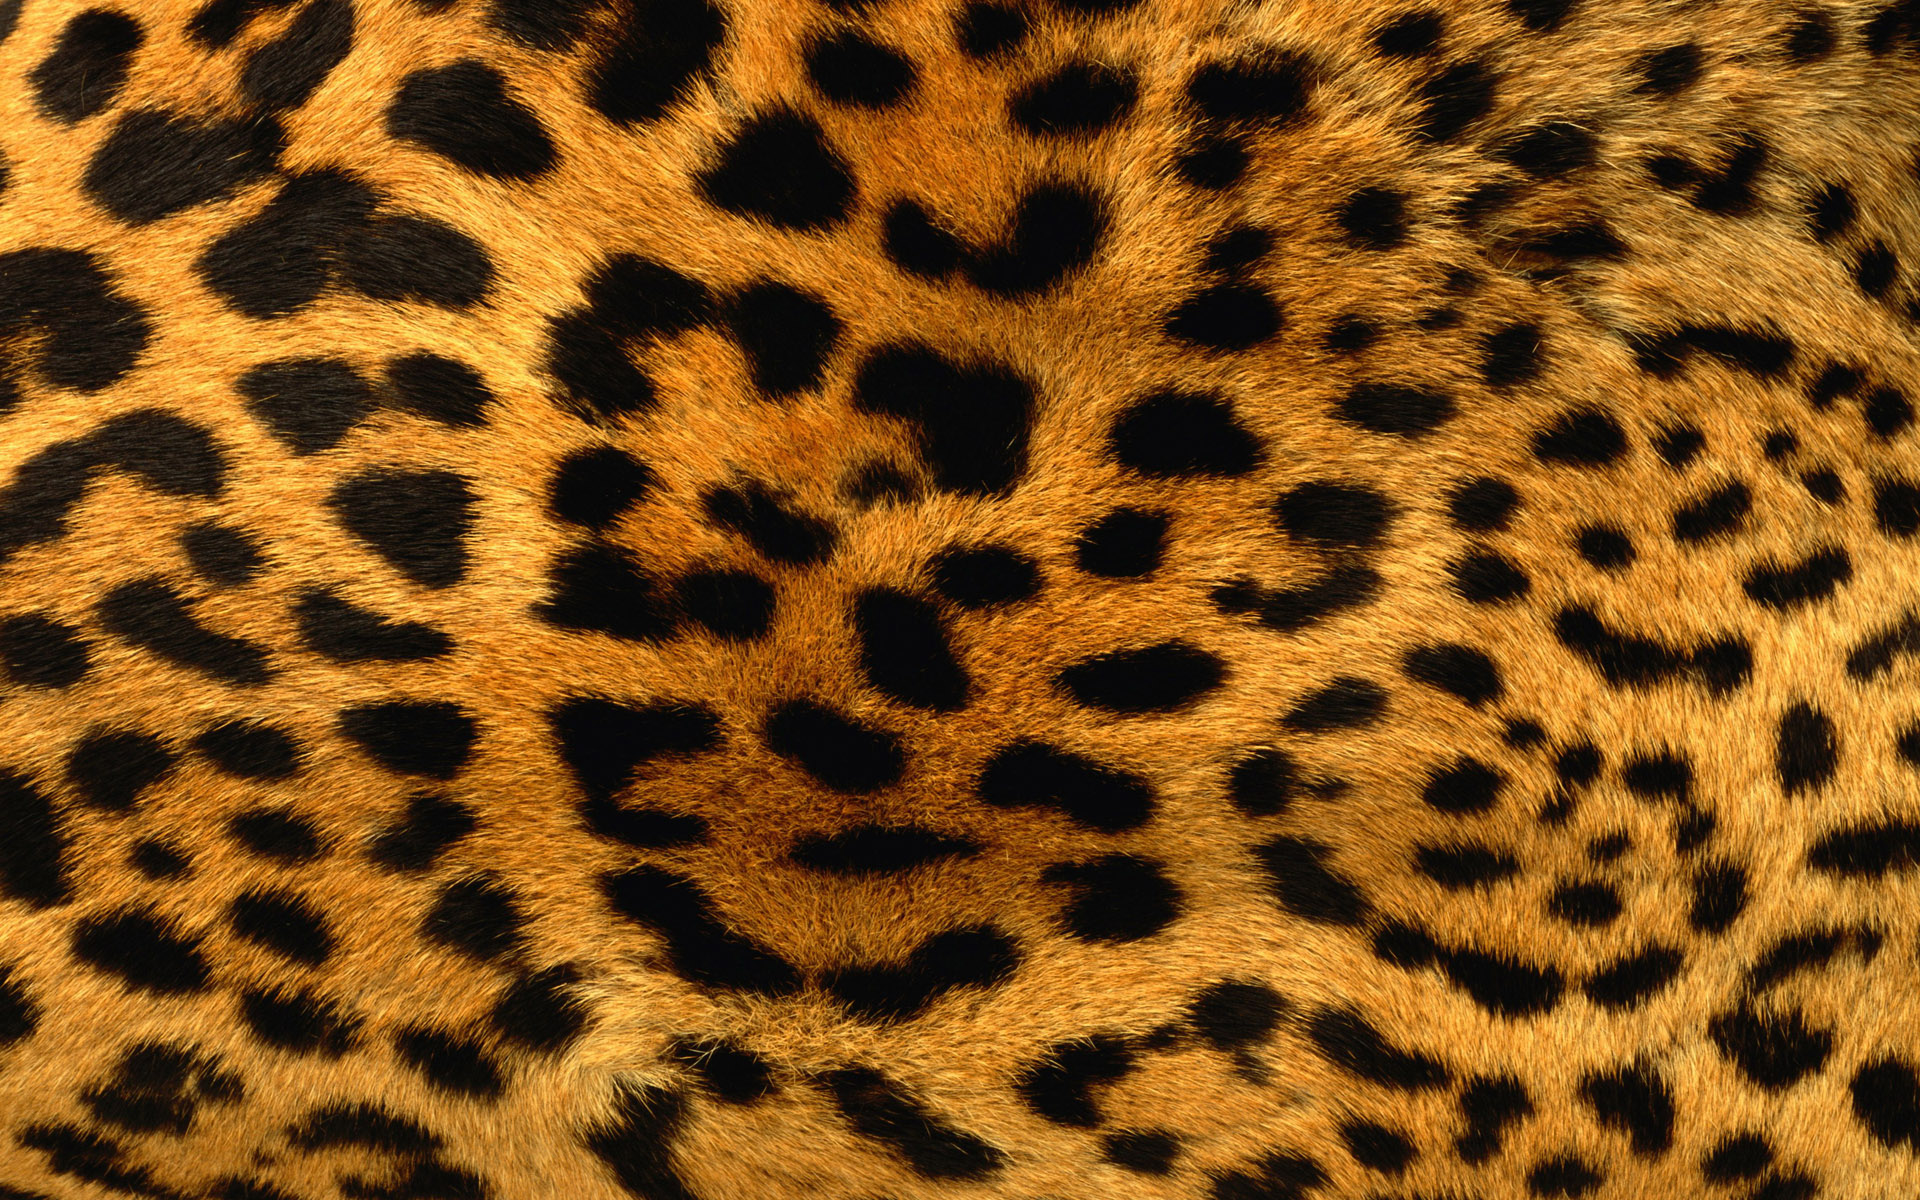 Wallpaper to print wallpapersafari you are viewing the fashion wallpaper named leopard print 1920x1200 toneelgroepblik Gallery